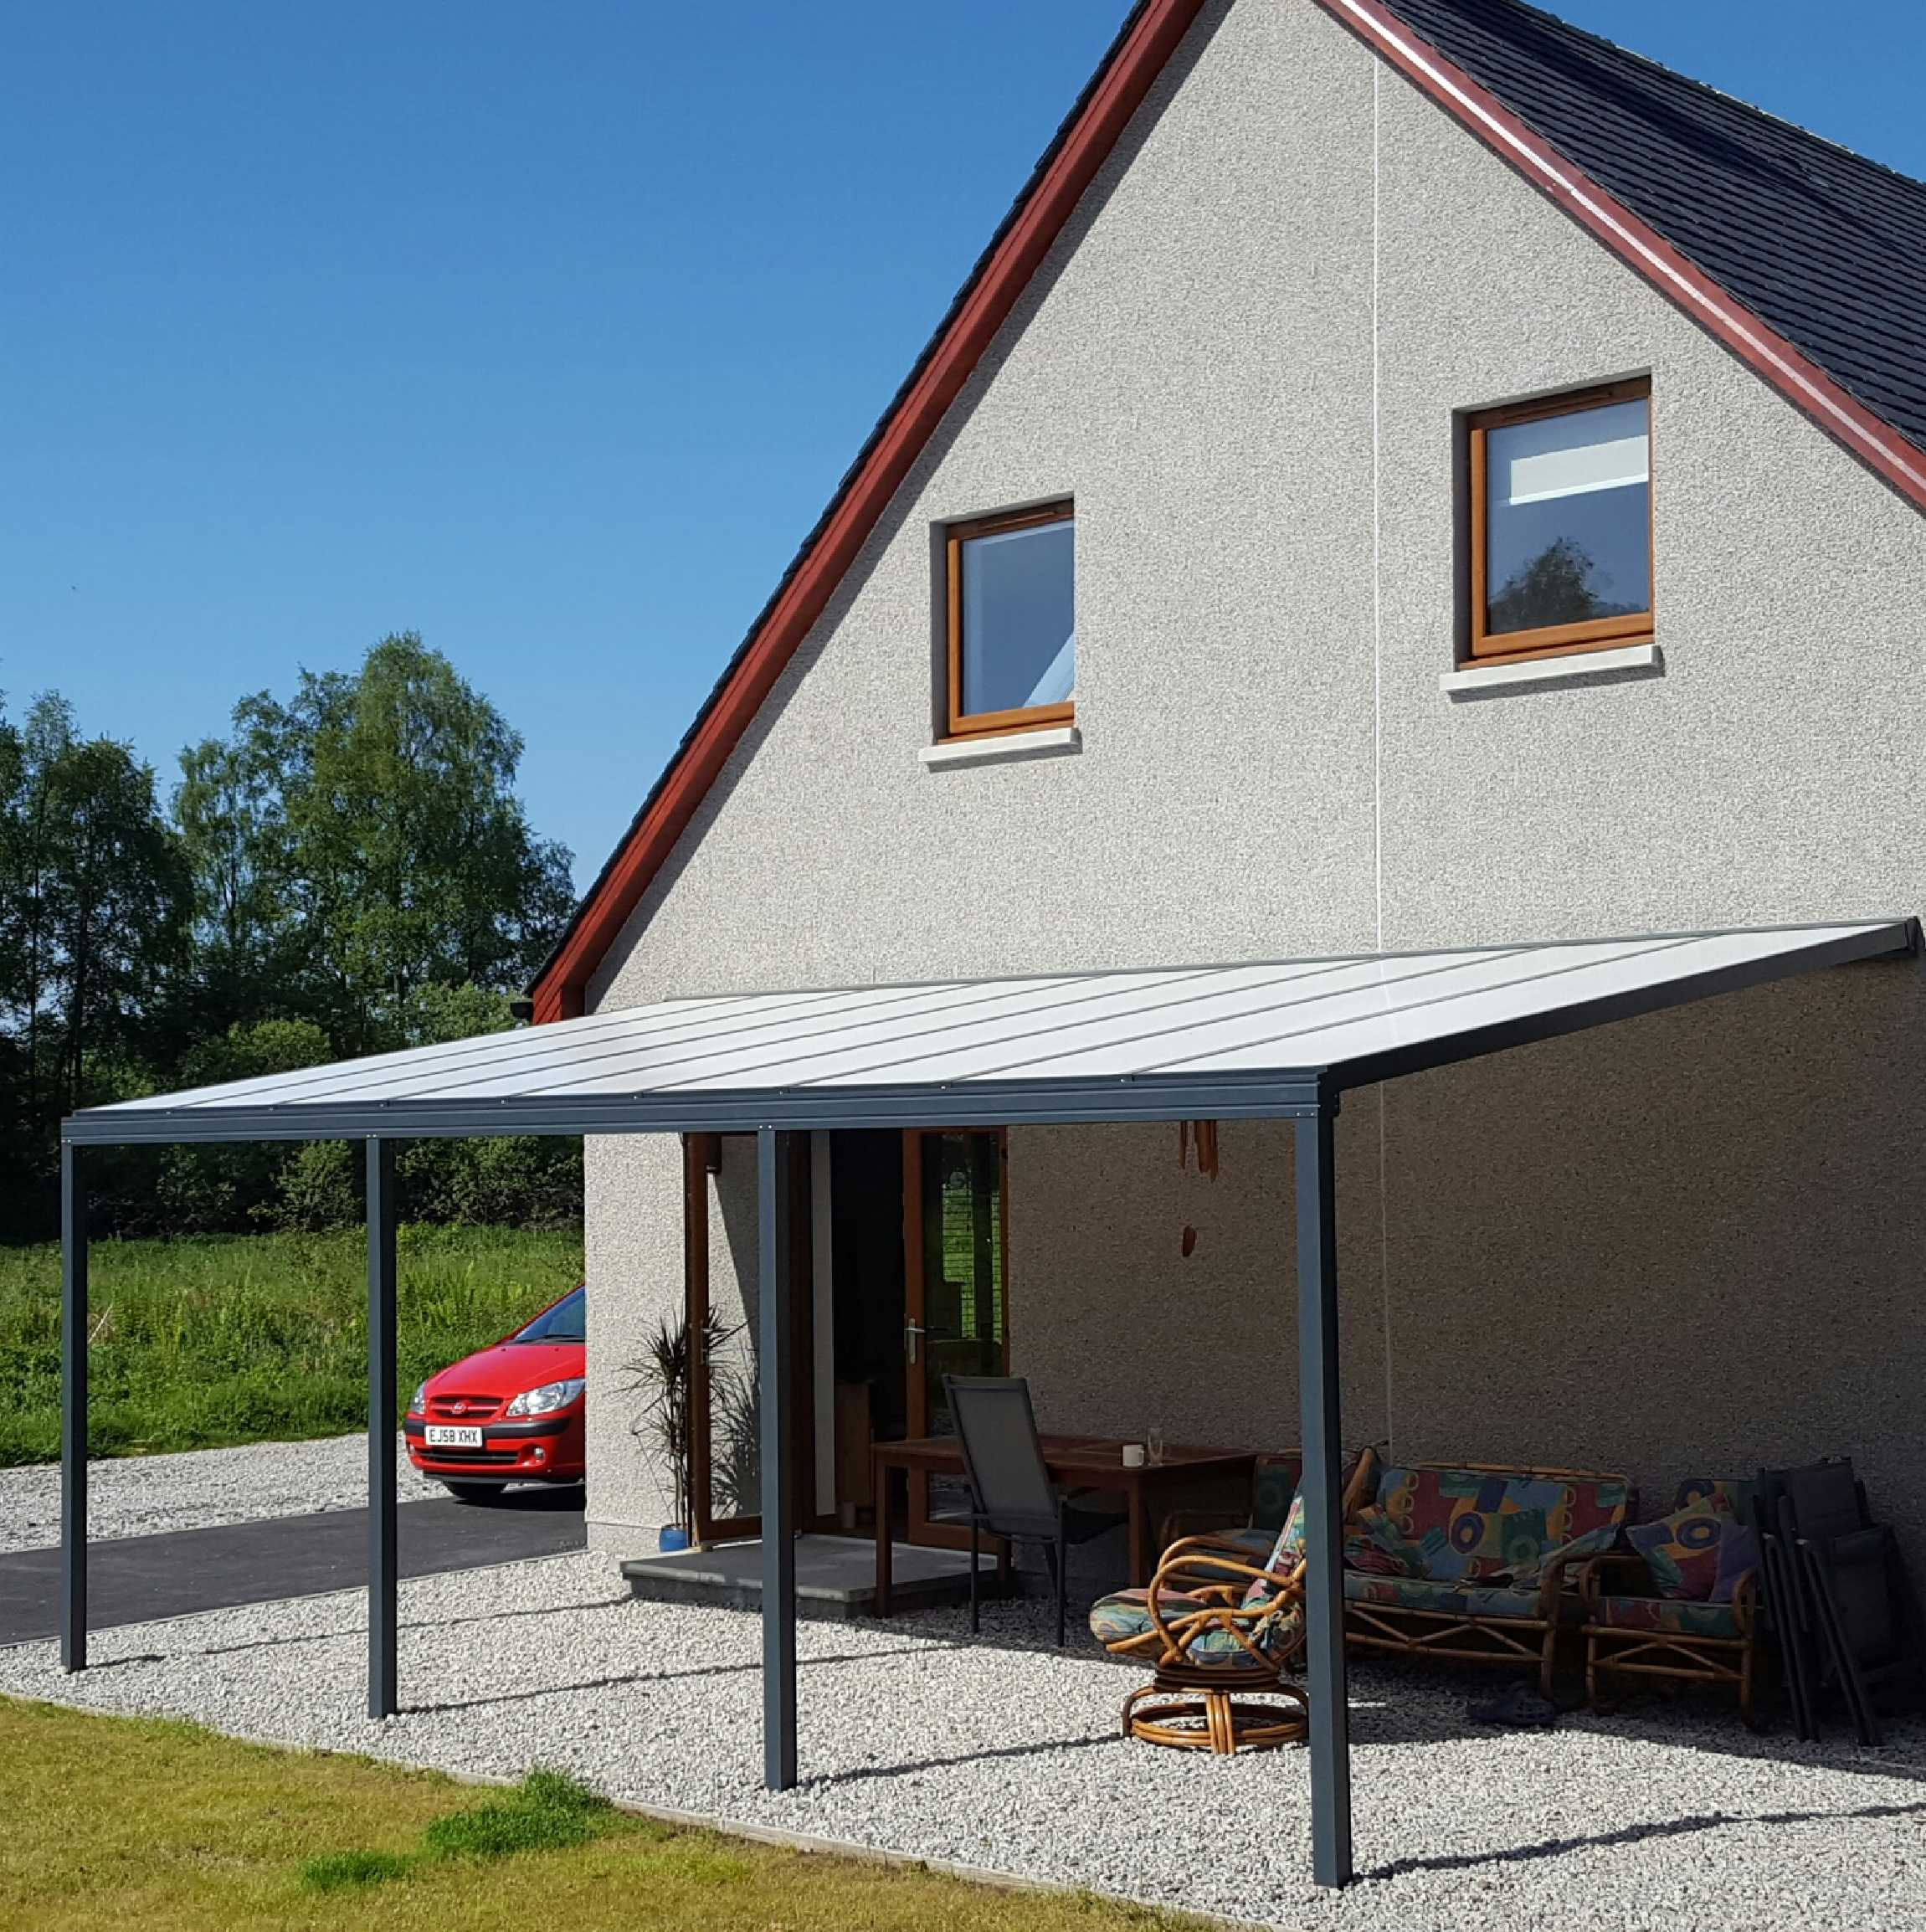 Great selection of Omega Smart Lean-To Canopy, Anthracite Grey, 16mm Polycarbonate Glazing - 5.2m (W) x 1.5m (P), (3) Supporting Posts